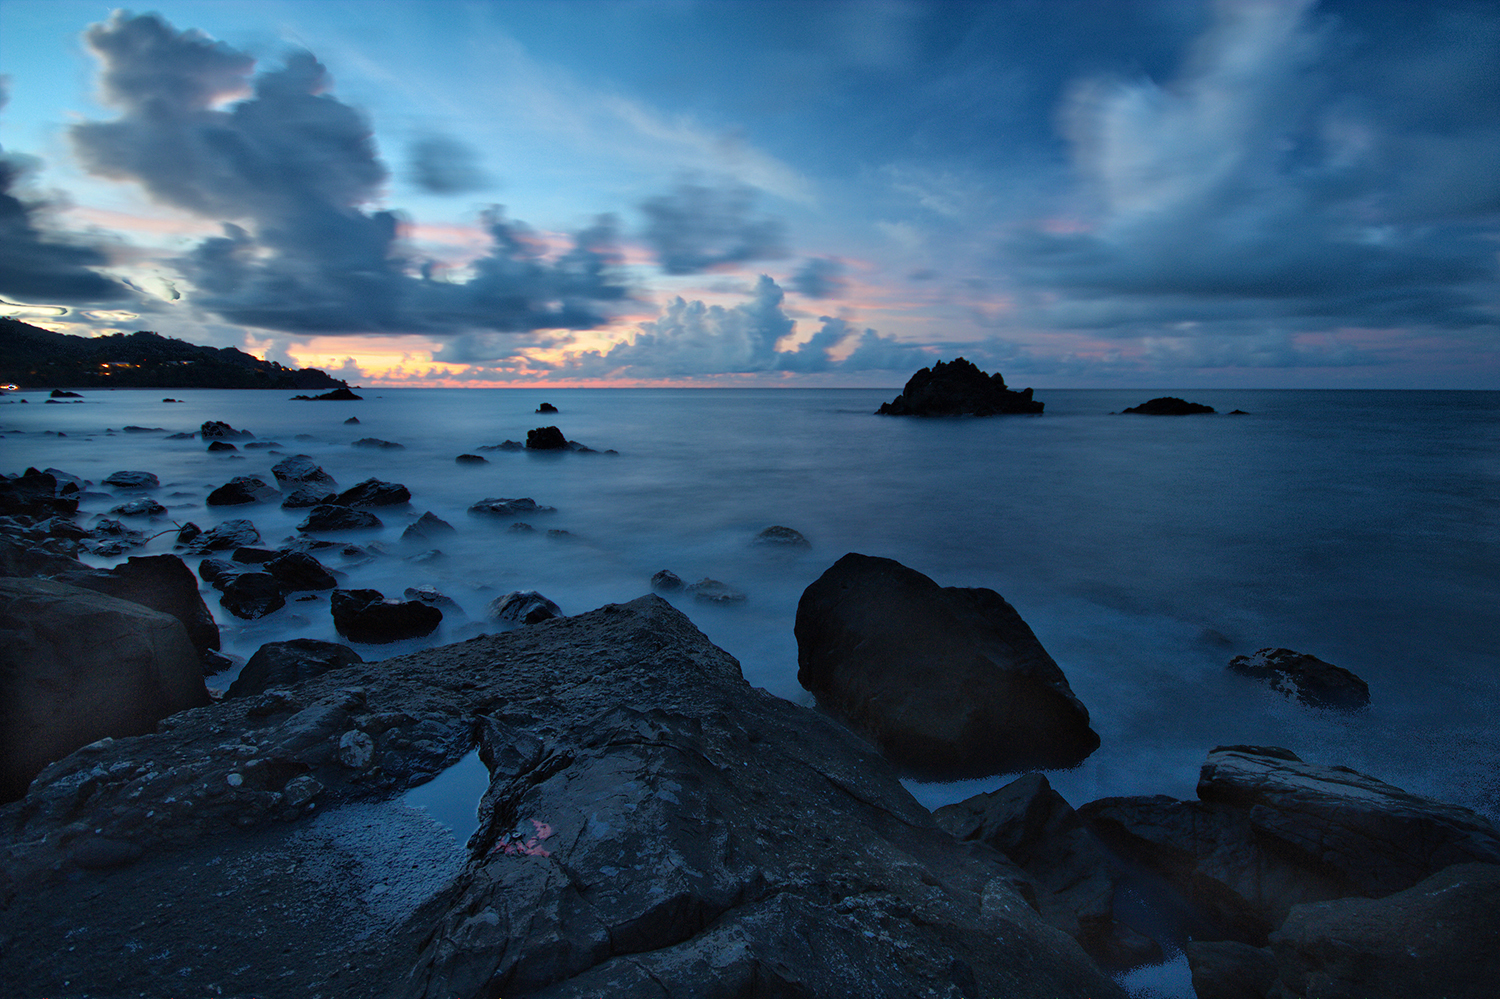 1 - 3 Tips for Blue Hour Photography